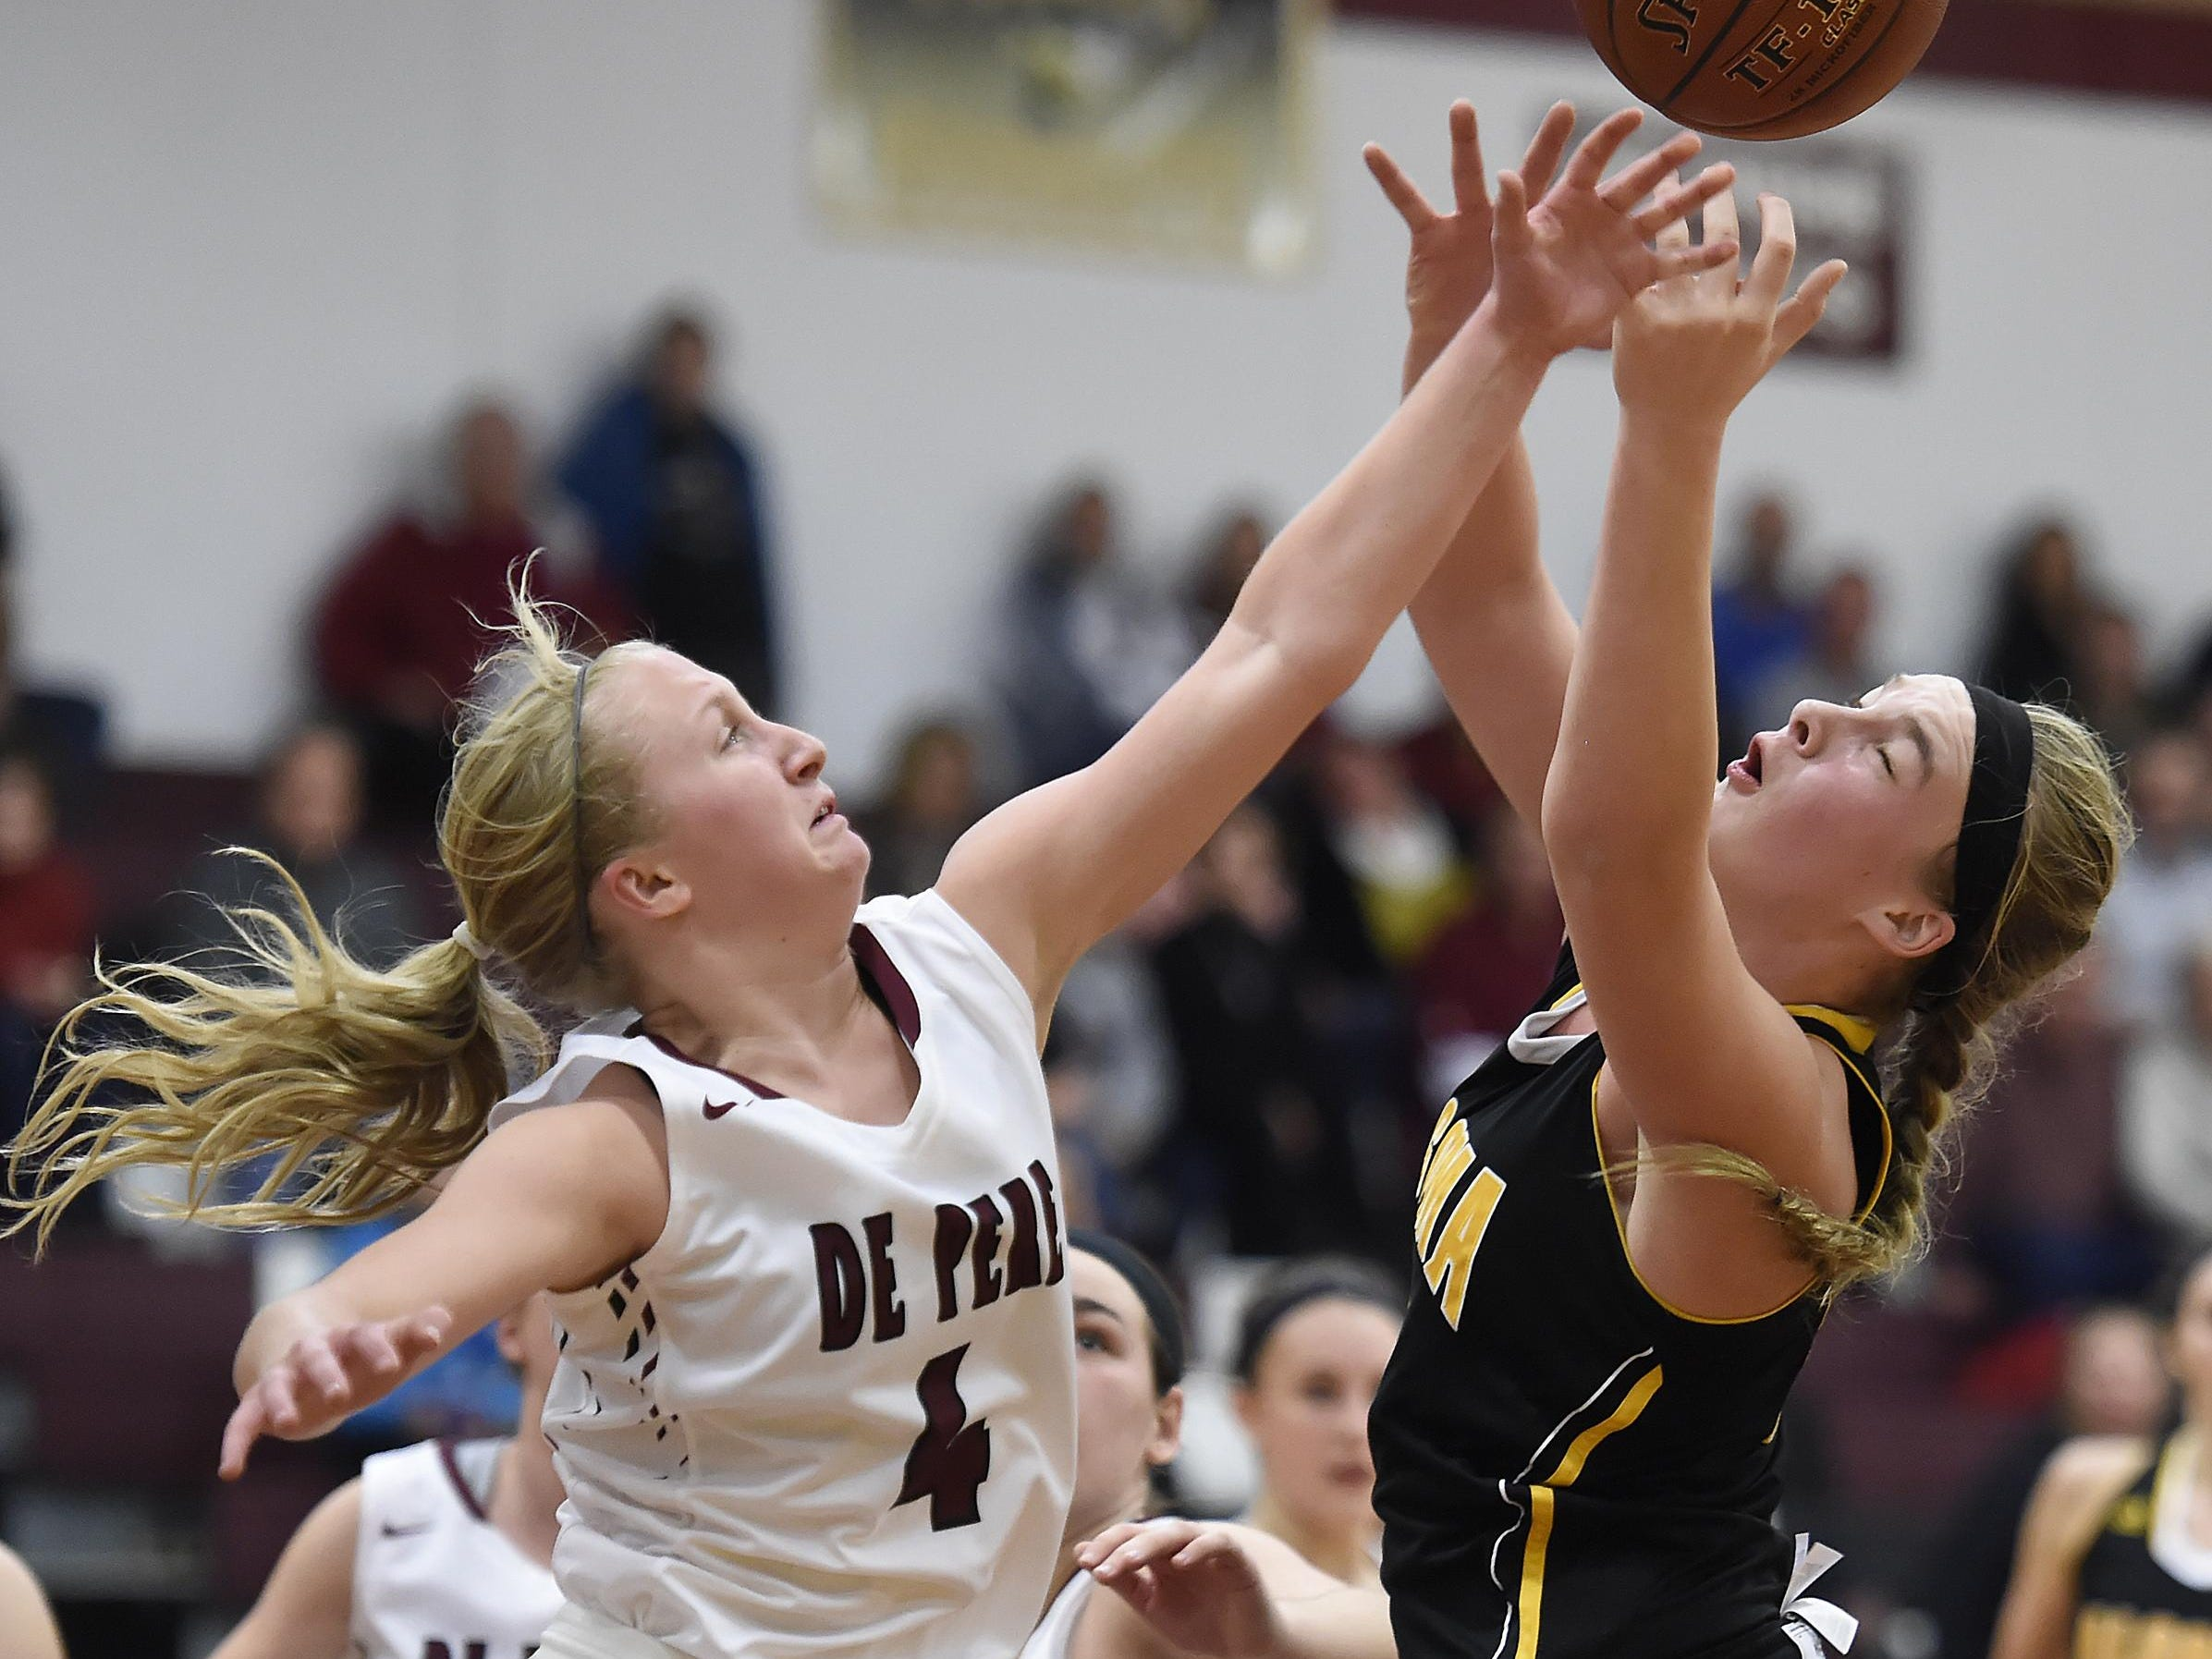 De Pere's Olivia DeCleene (4) and Algoma's Makayla Guilette battle for a rebound in the second half during Tuesday night's girls basketball game at De Pere. See more photos from the game at greenbaypressgazette.com.